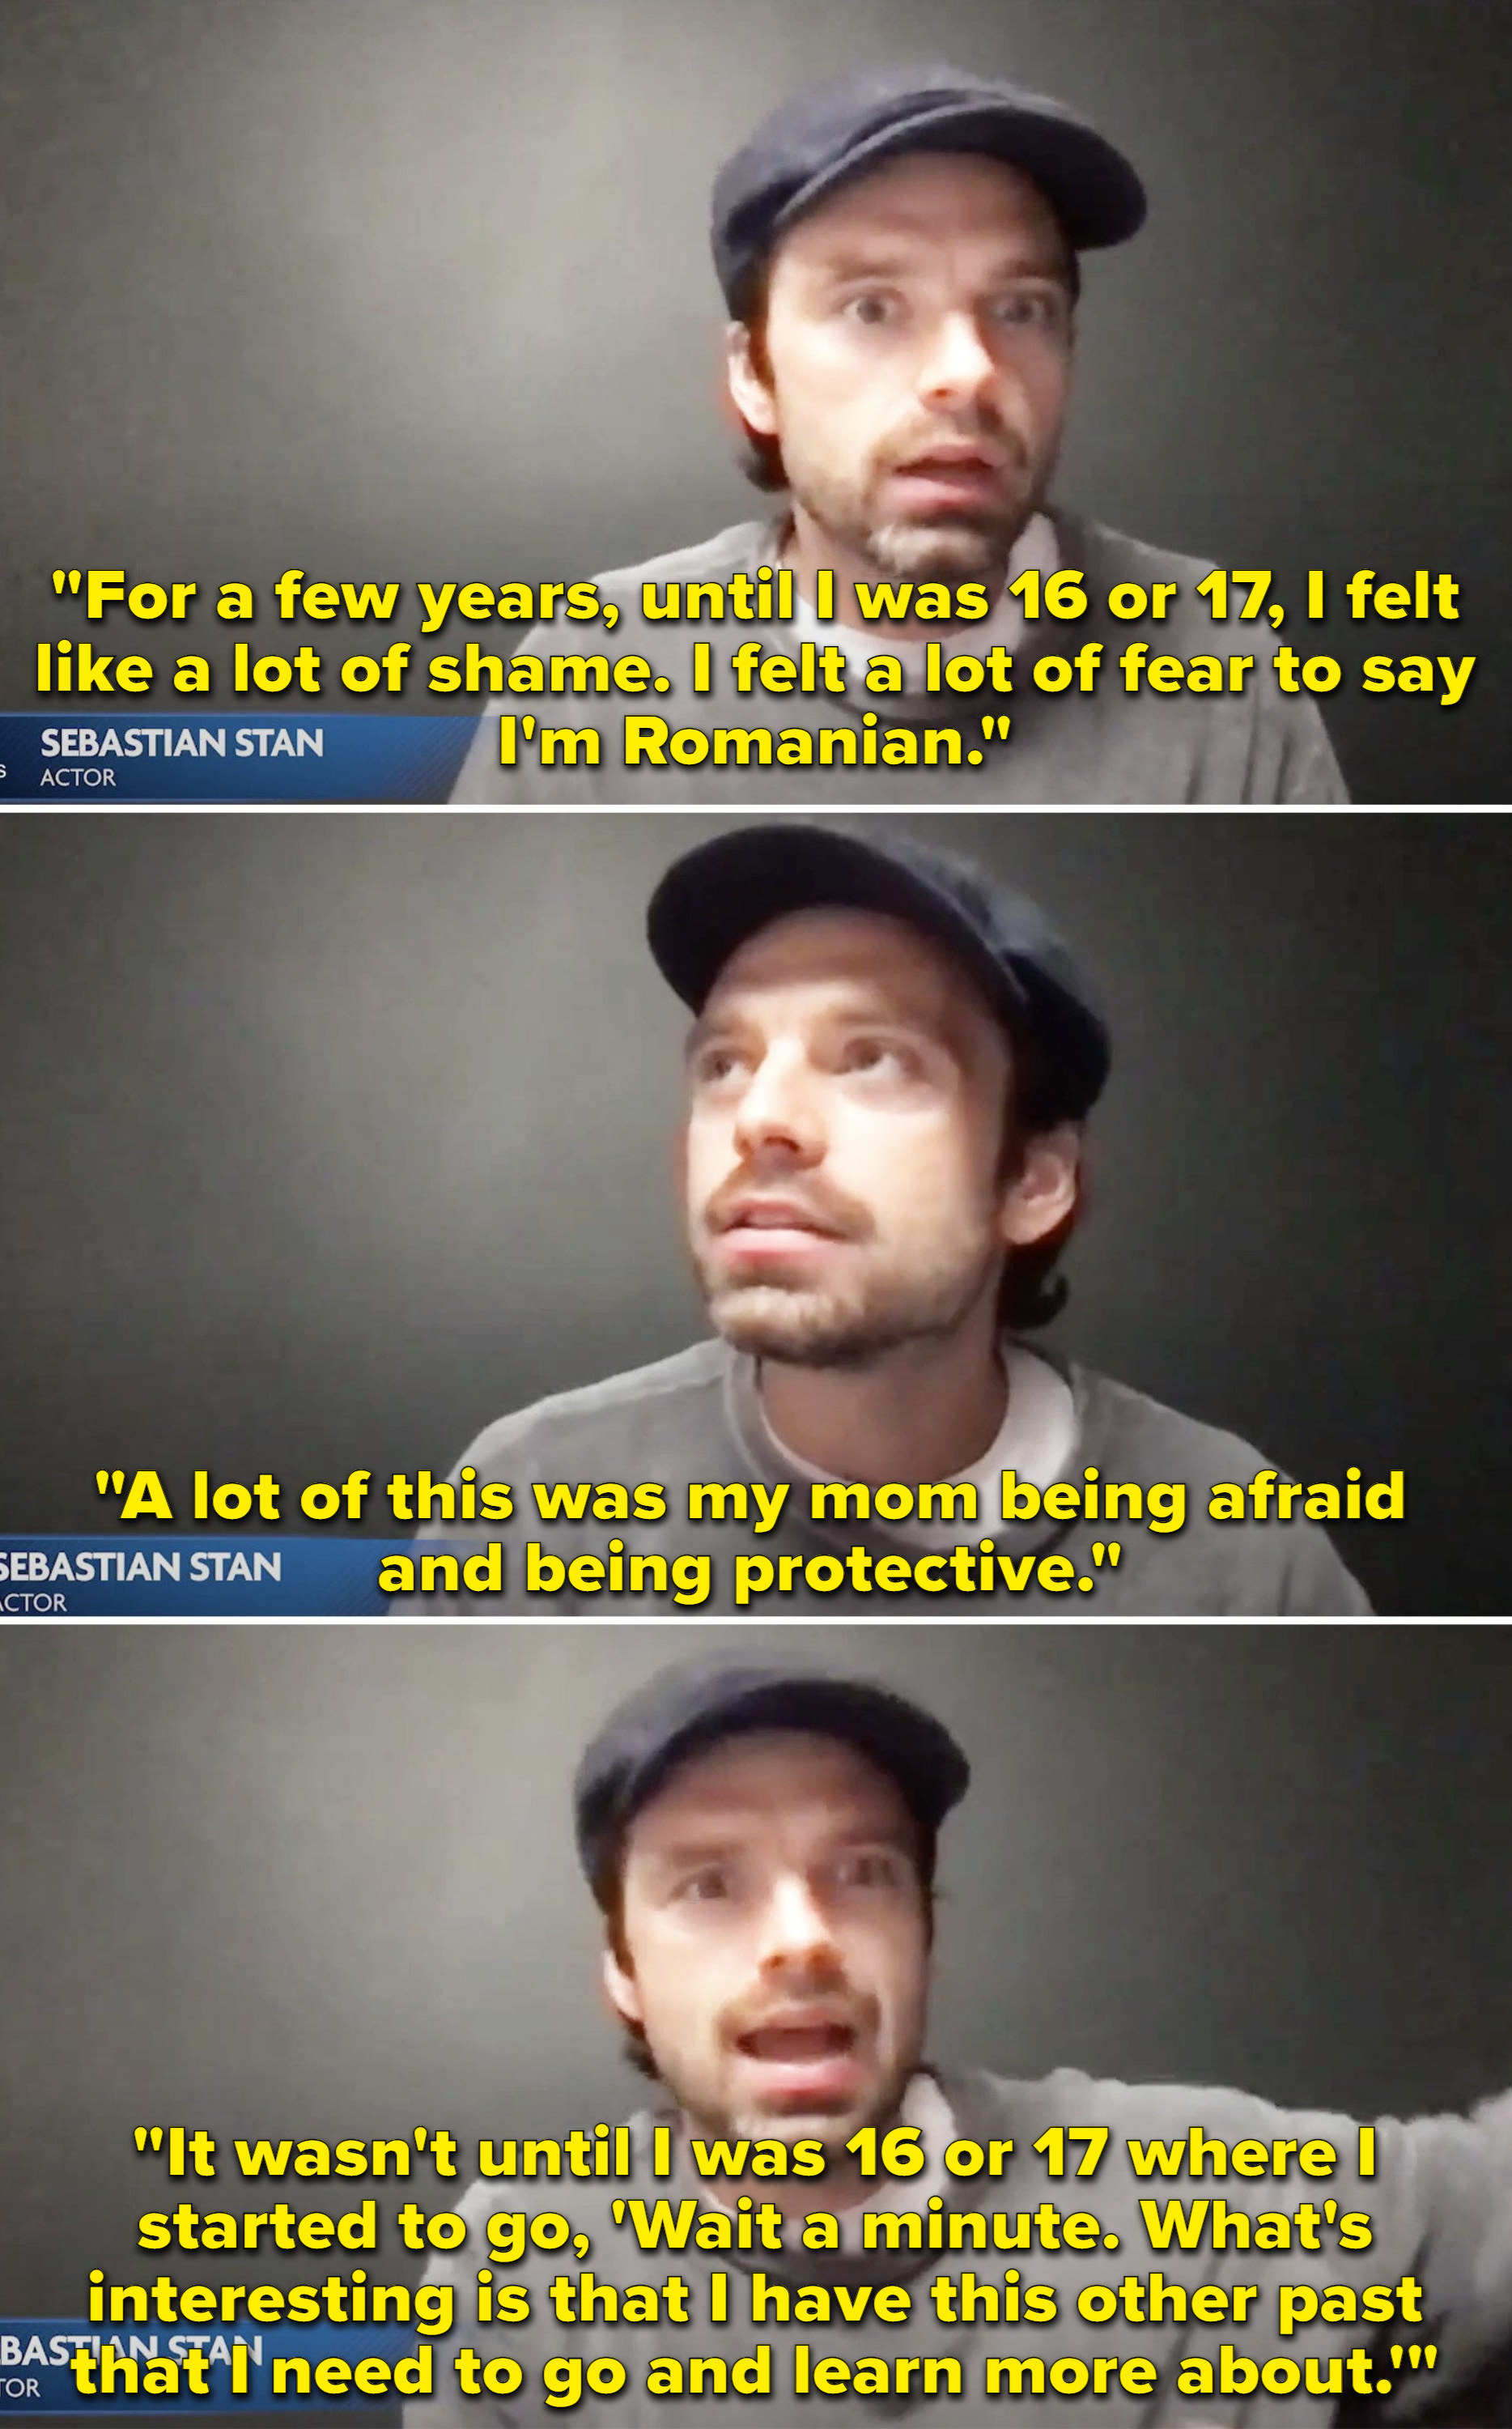 """Sebastian saying until he was 16 or 17 he """"felt a lot of shame"""" saying he was from Romania"""